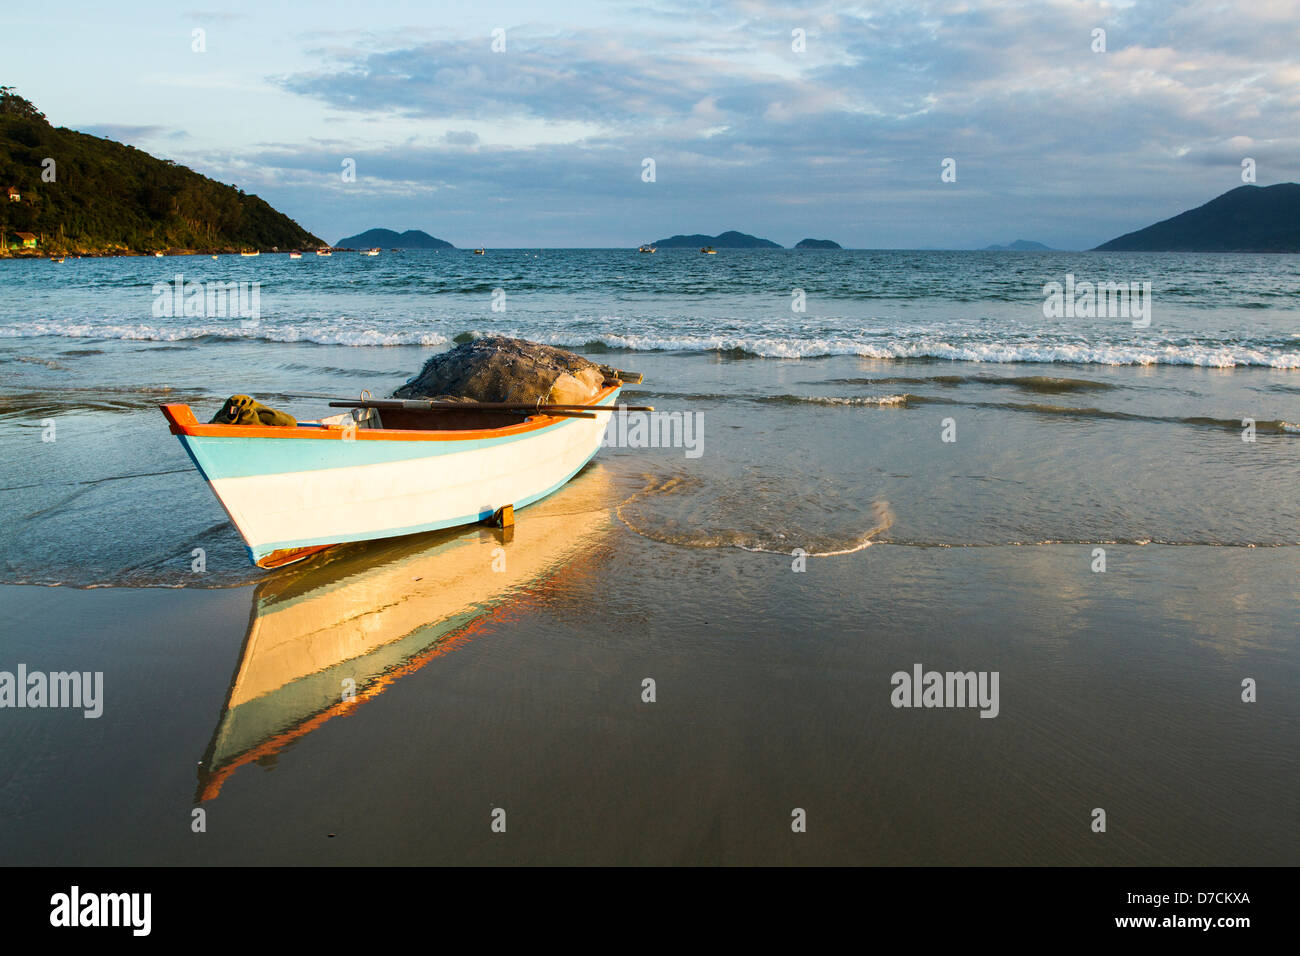 Fishing boat on the sand at Pantano do Sul Beach. - Stock Image